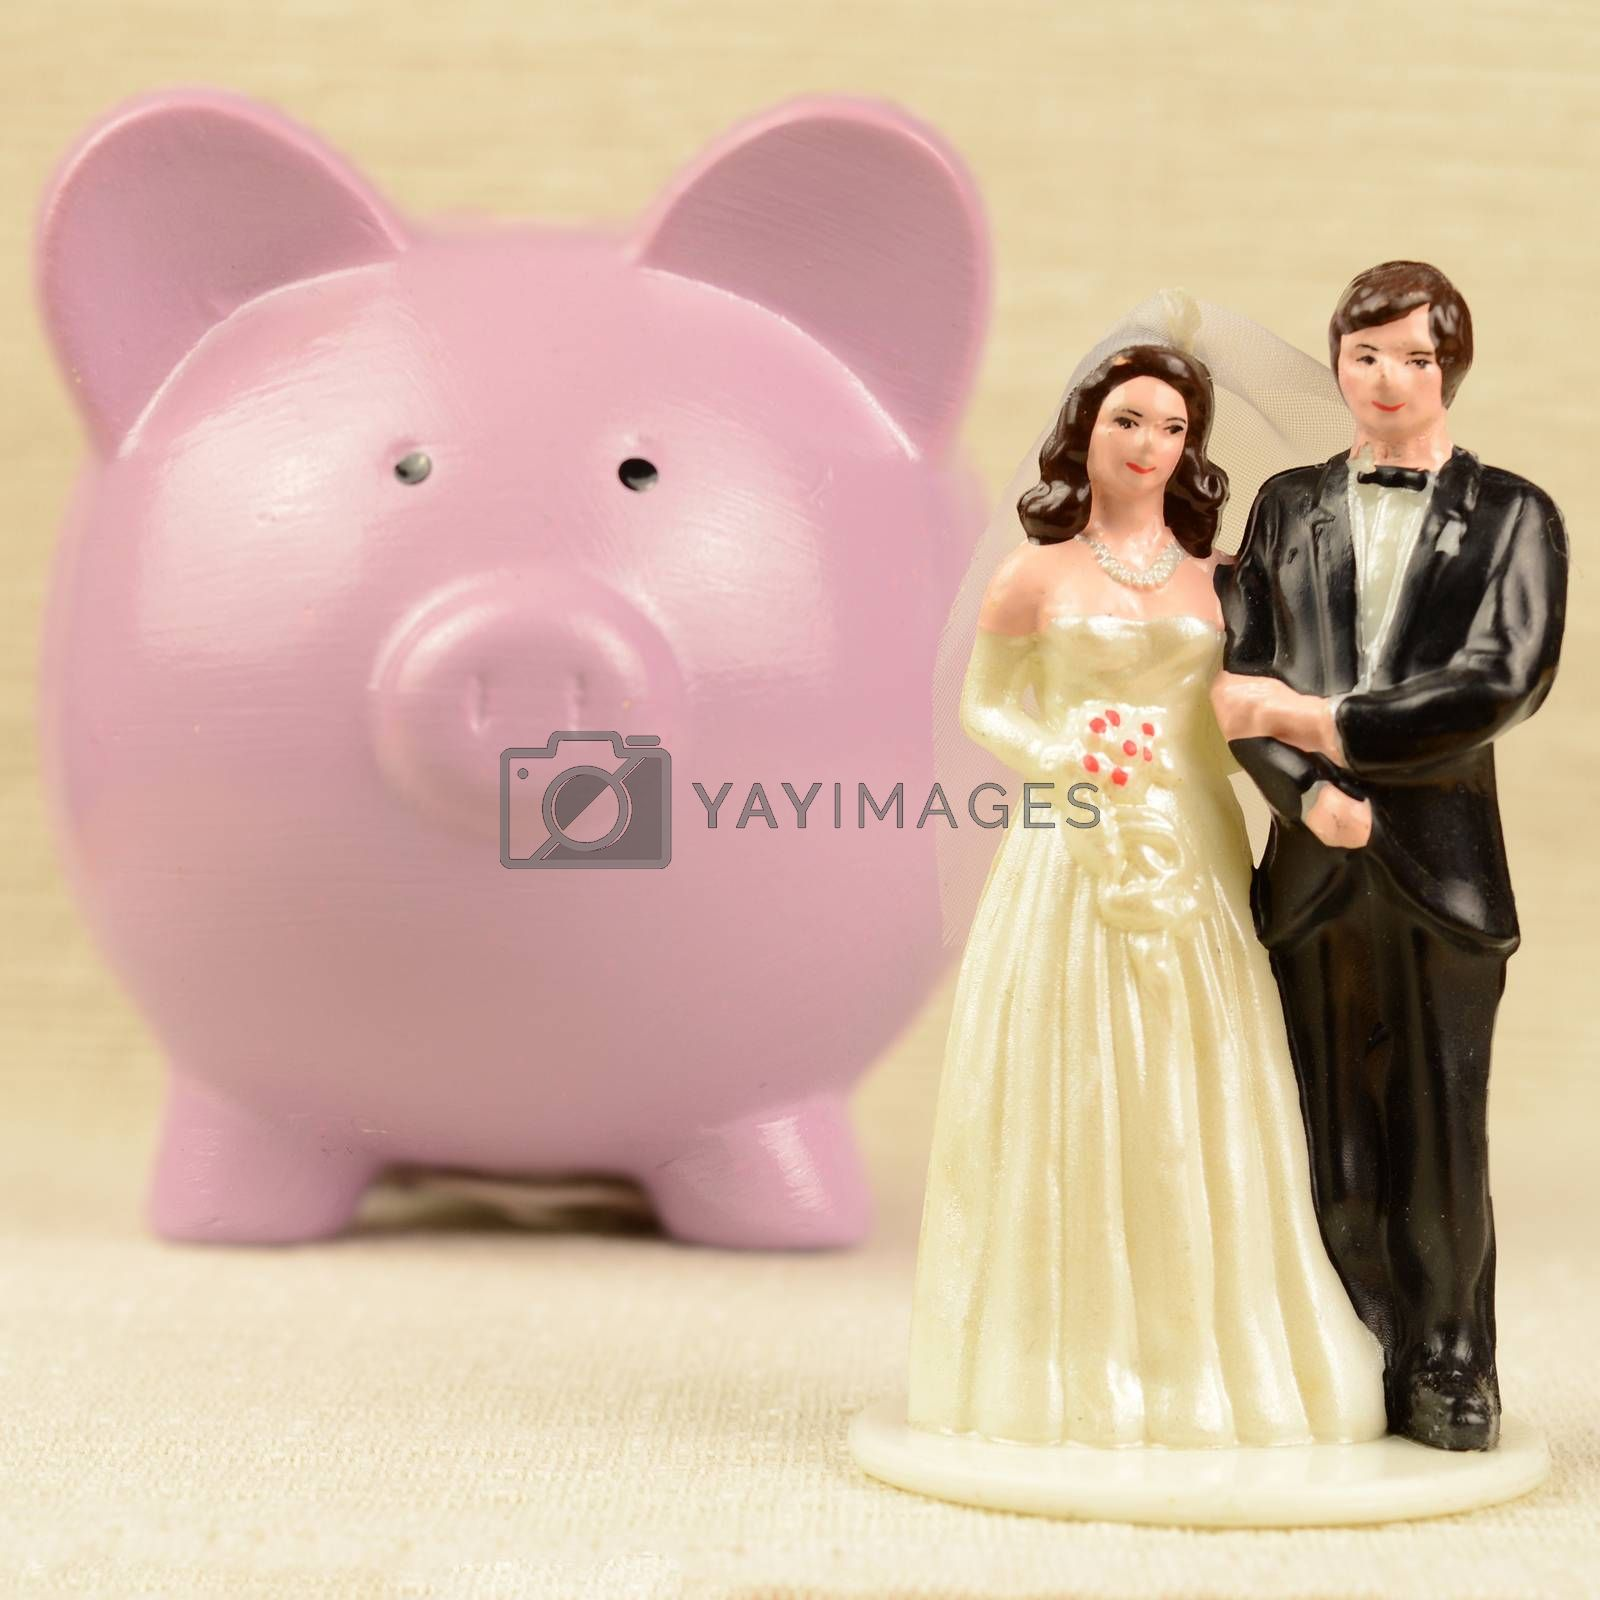 A conceptual image based on saving cash for the event of marriage.